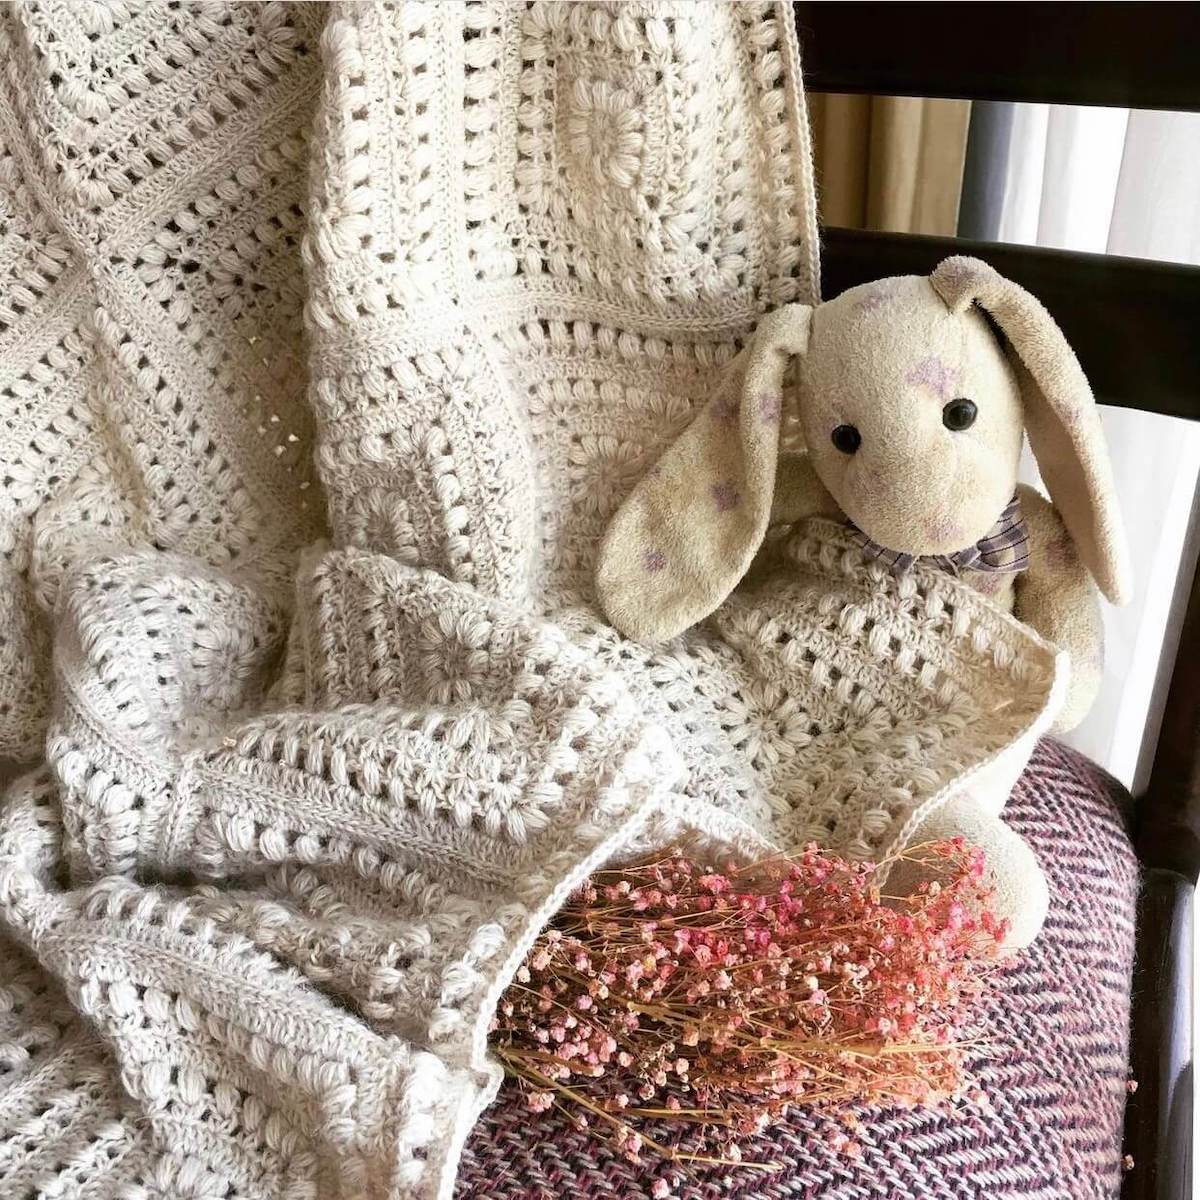 Crochet granny square baby blanket made by trikotreats - free crochet pattern by Wilmade